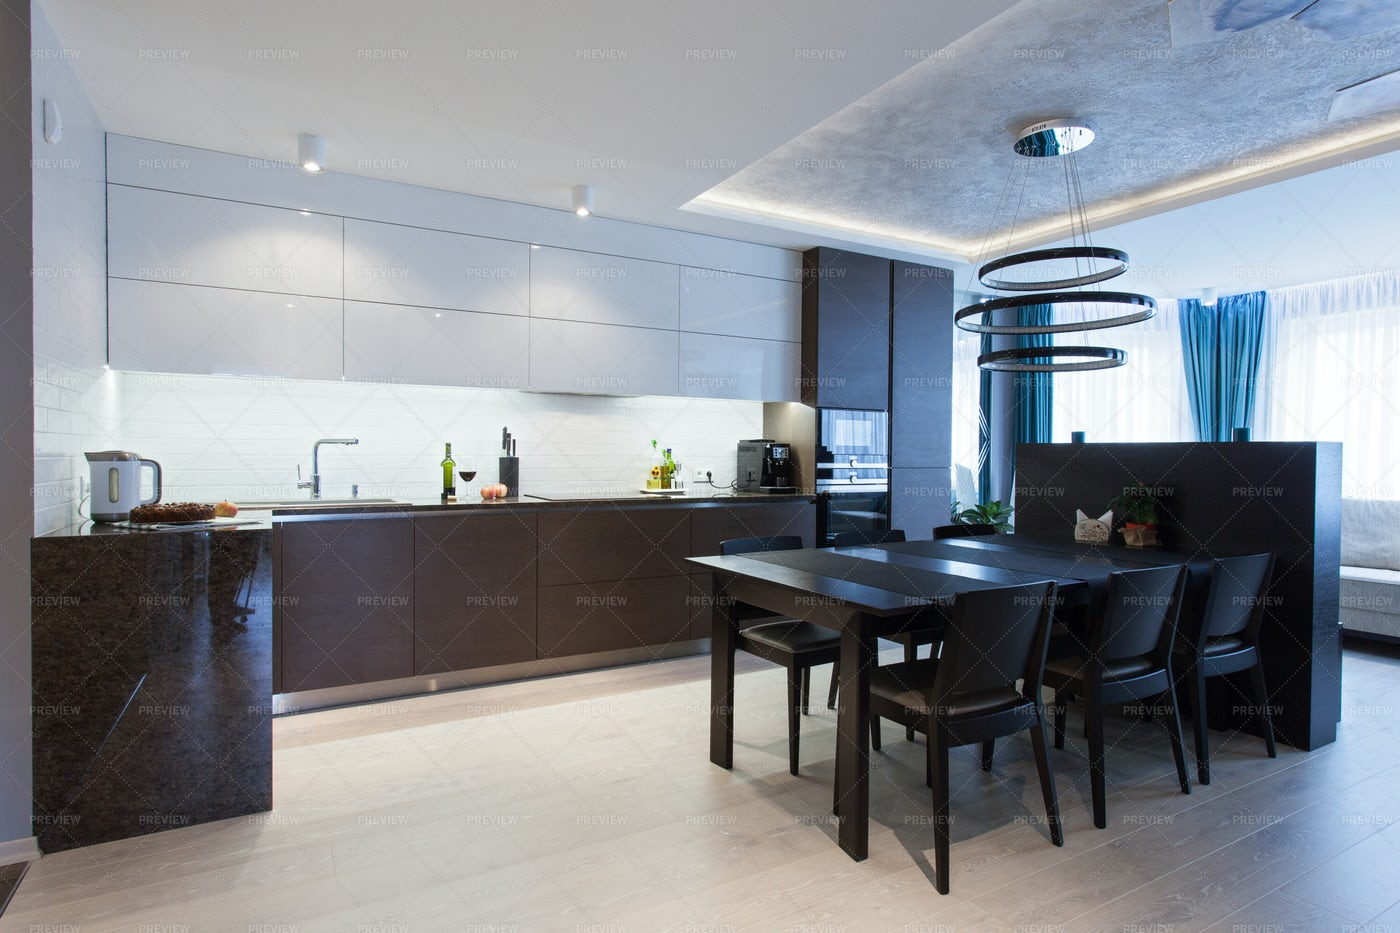 Kitchen And Dining Interior: Stock Photos